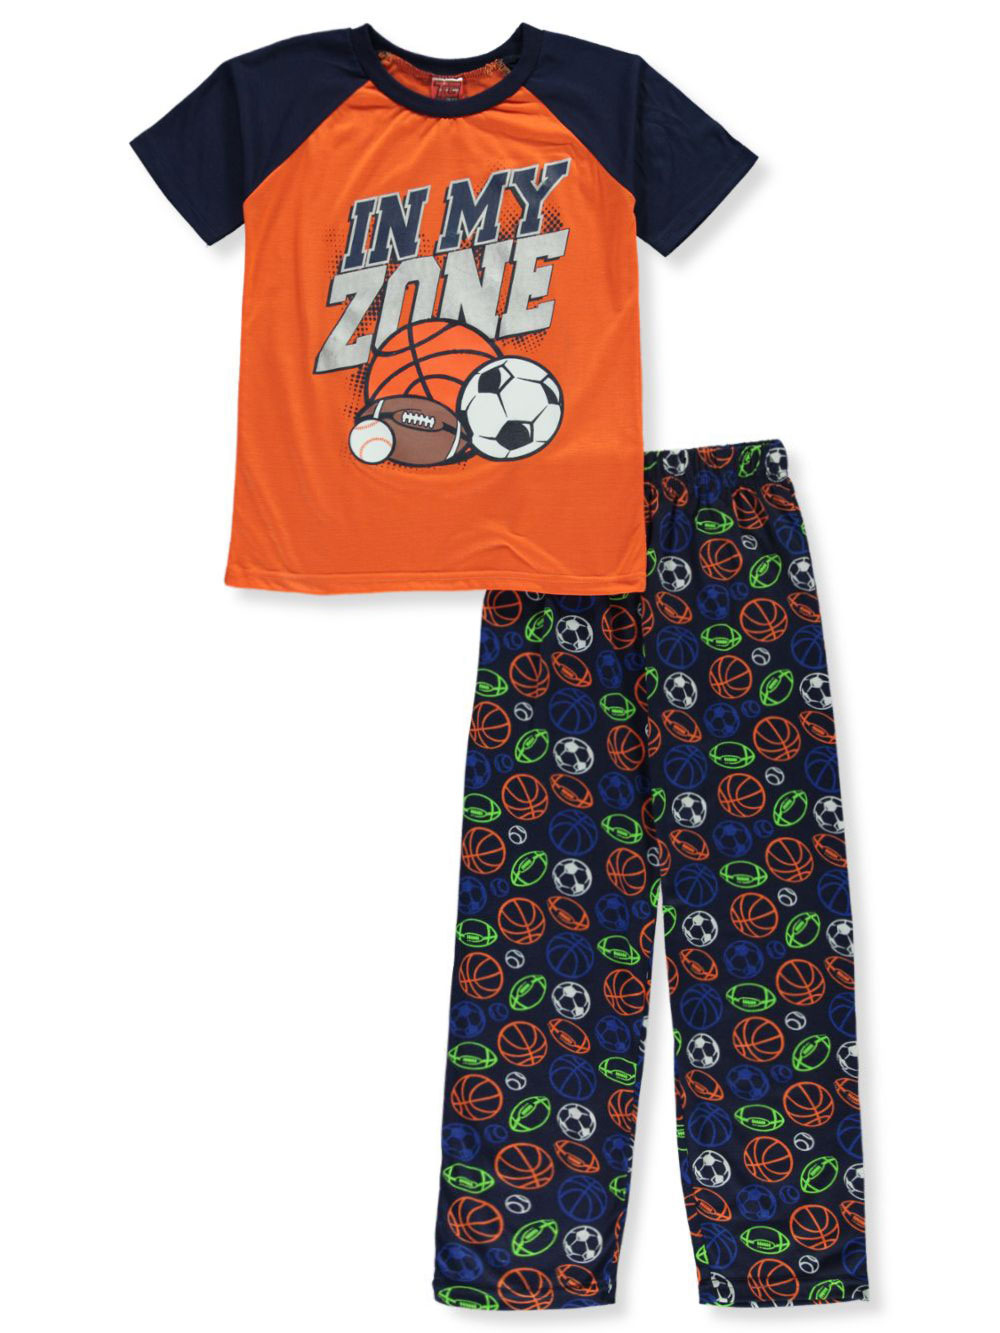 Boys Orange Sleepwear